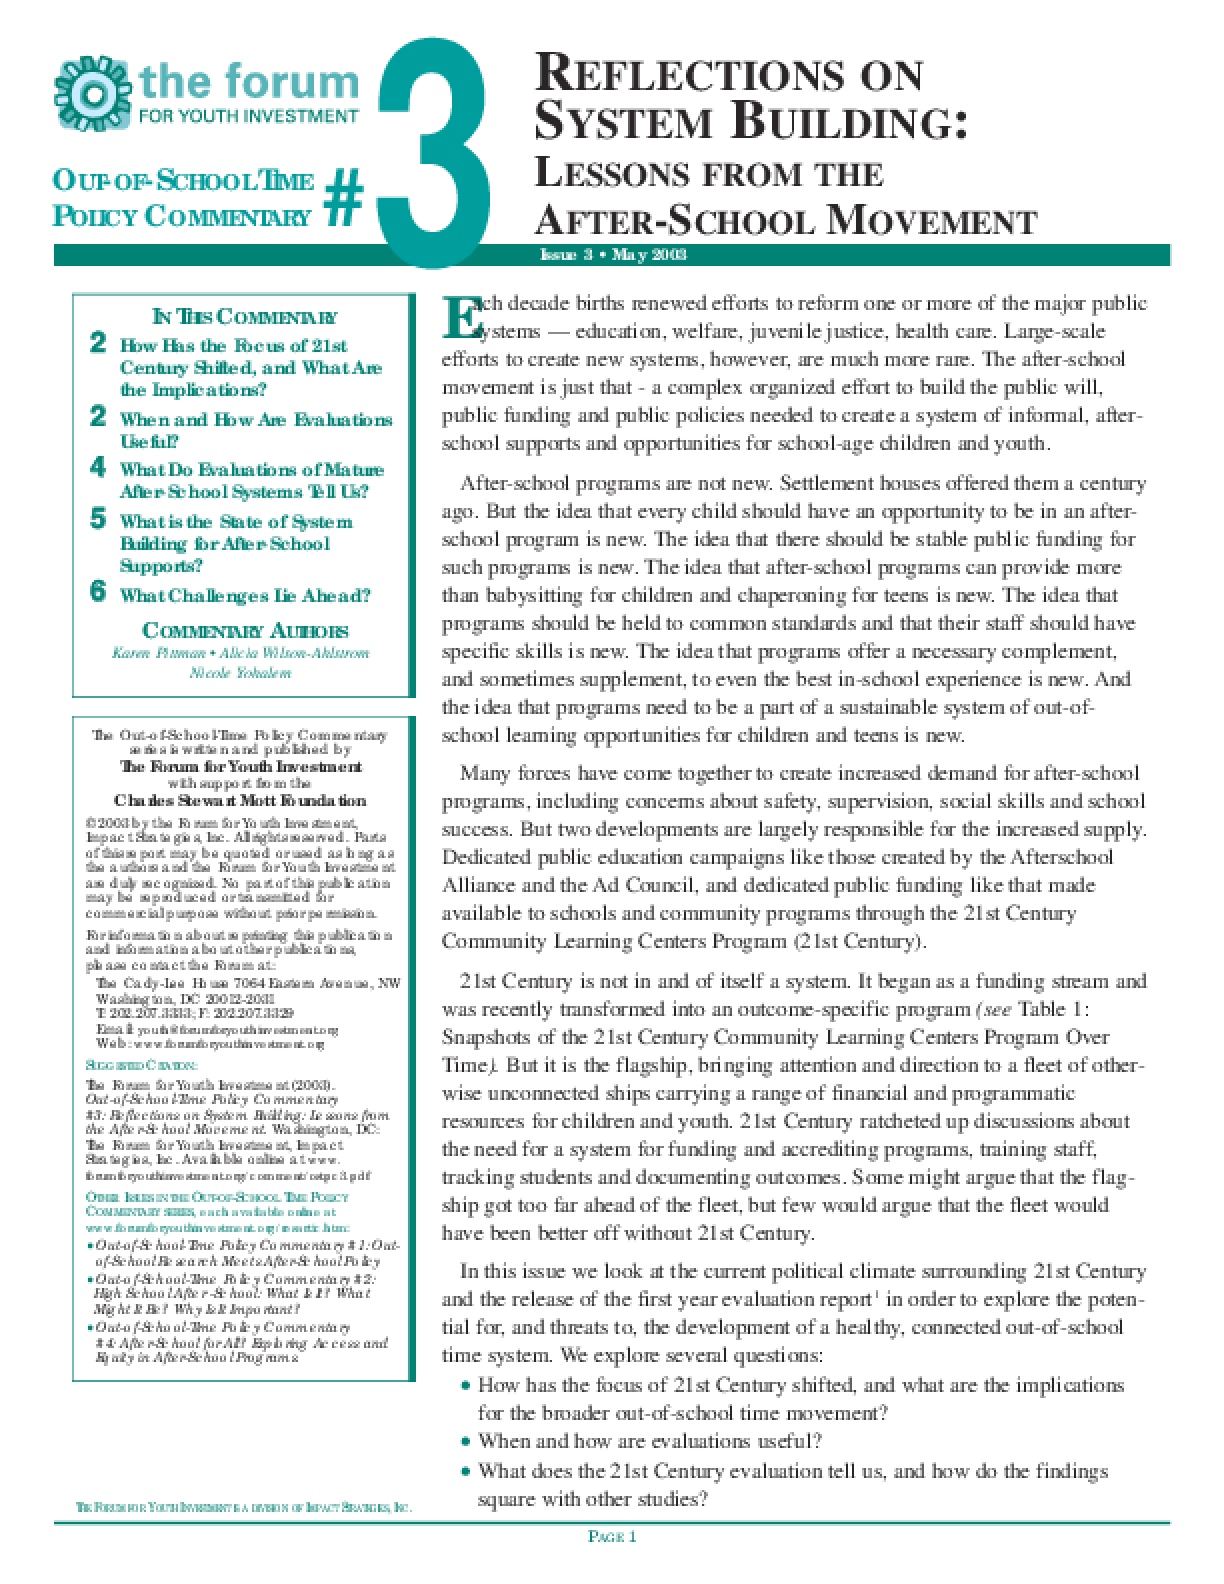 Out-of-School Time Policy Commentary #3: Reflections on System Building: Lessons from the After-School Movement